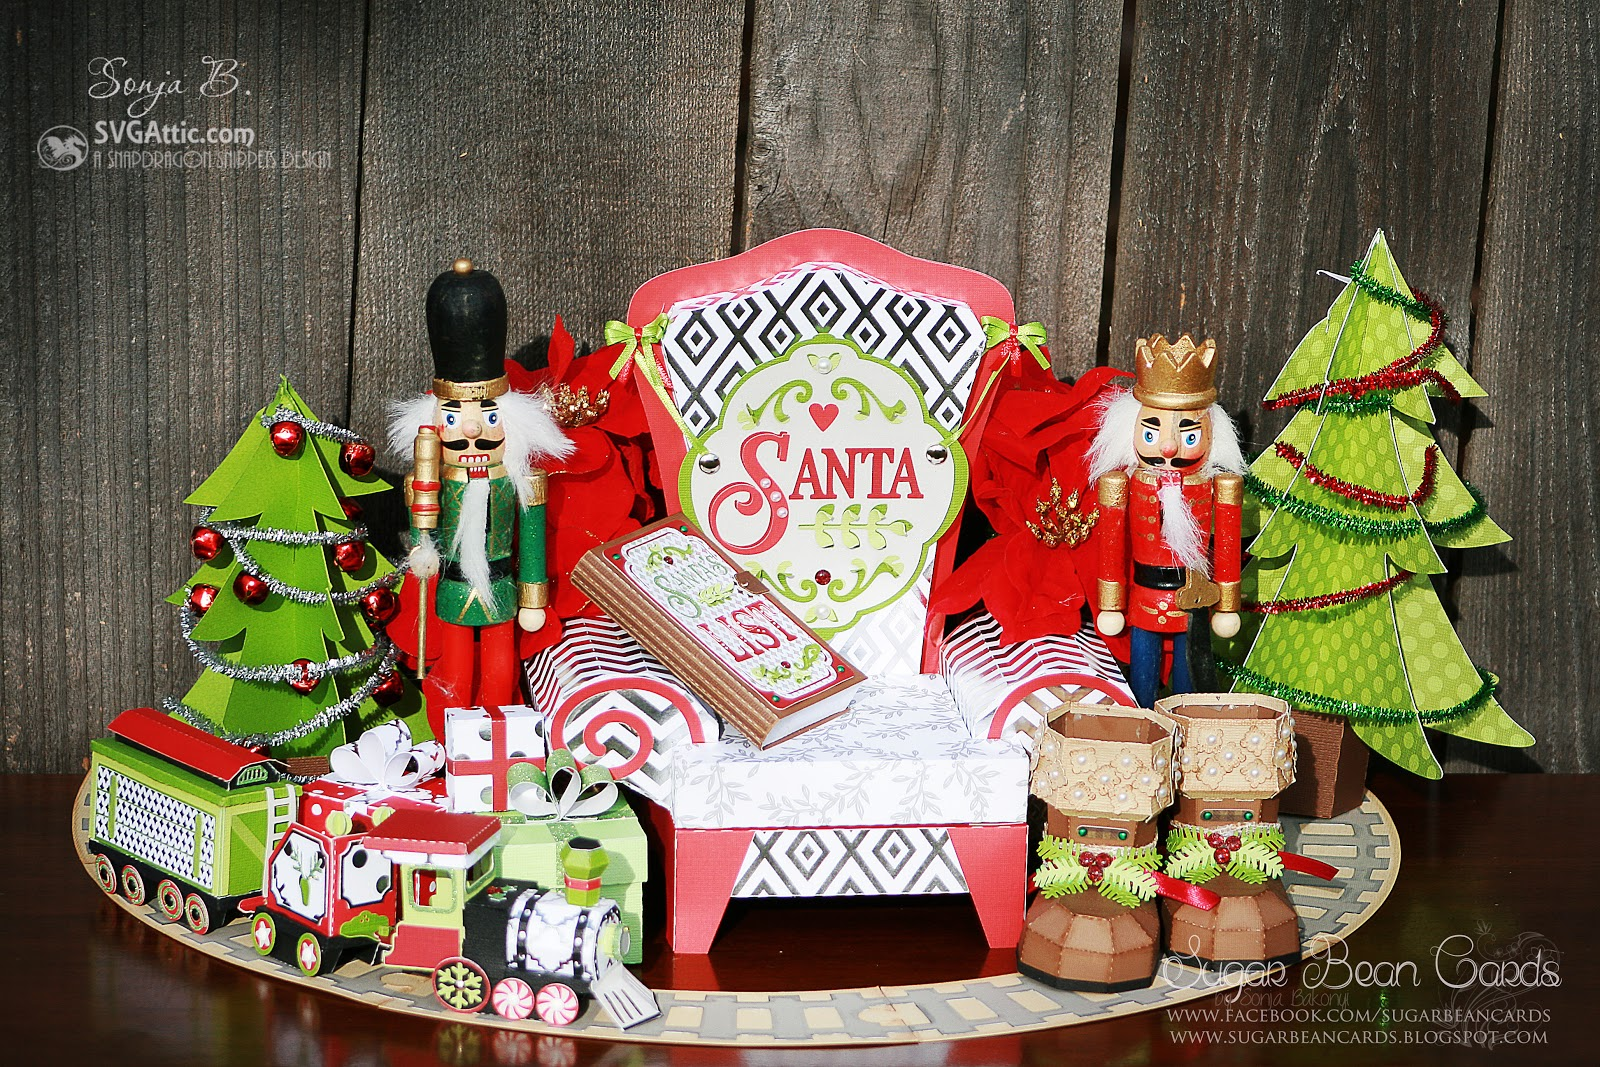 SVG Attic Blog Visiting Santa